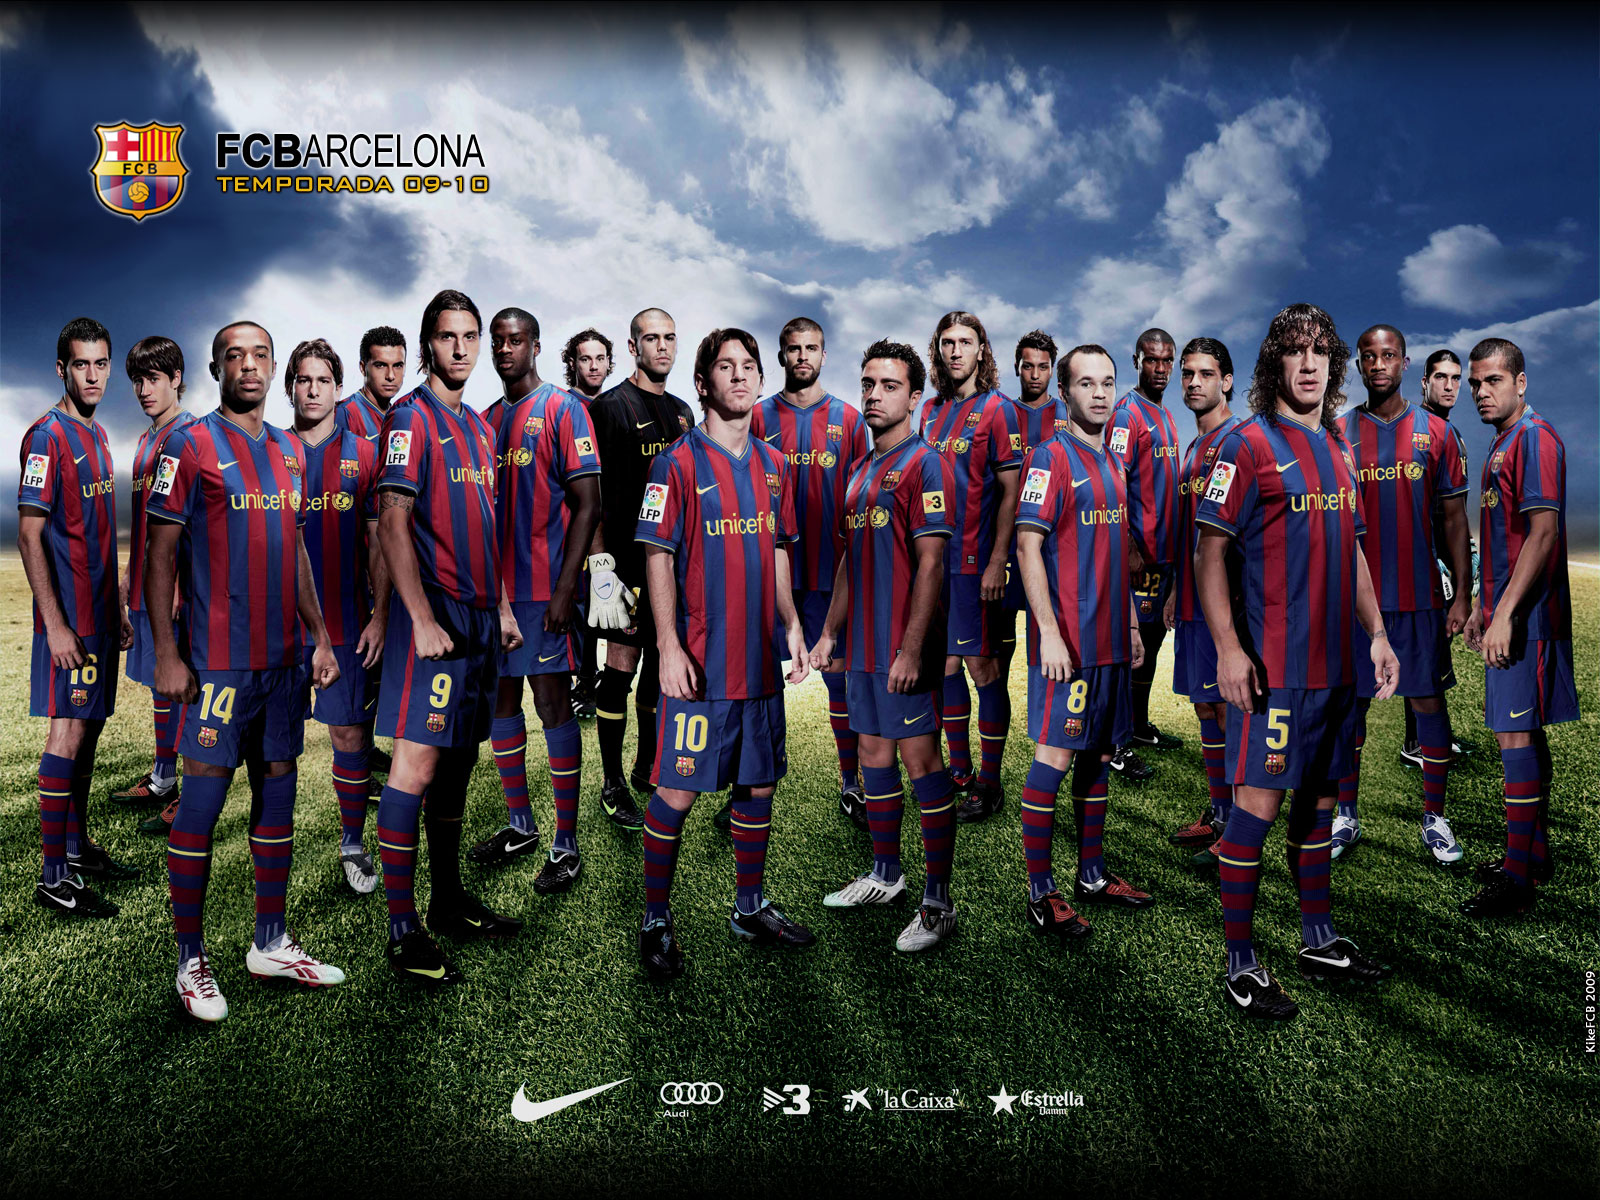 https://i1.wp.com/3.bp.blogspot.com/-79XQC9qCjro/TcRDDAZ3FwI/AAAAAAAACmM/1bpnsUI43_c/s1600/FC+Barcelona+team+Wallpapers+%25285%2529.jpg